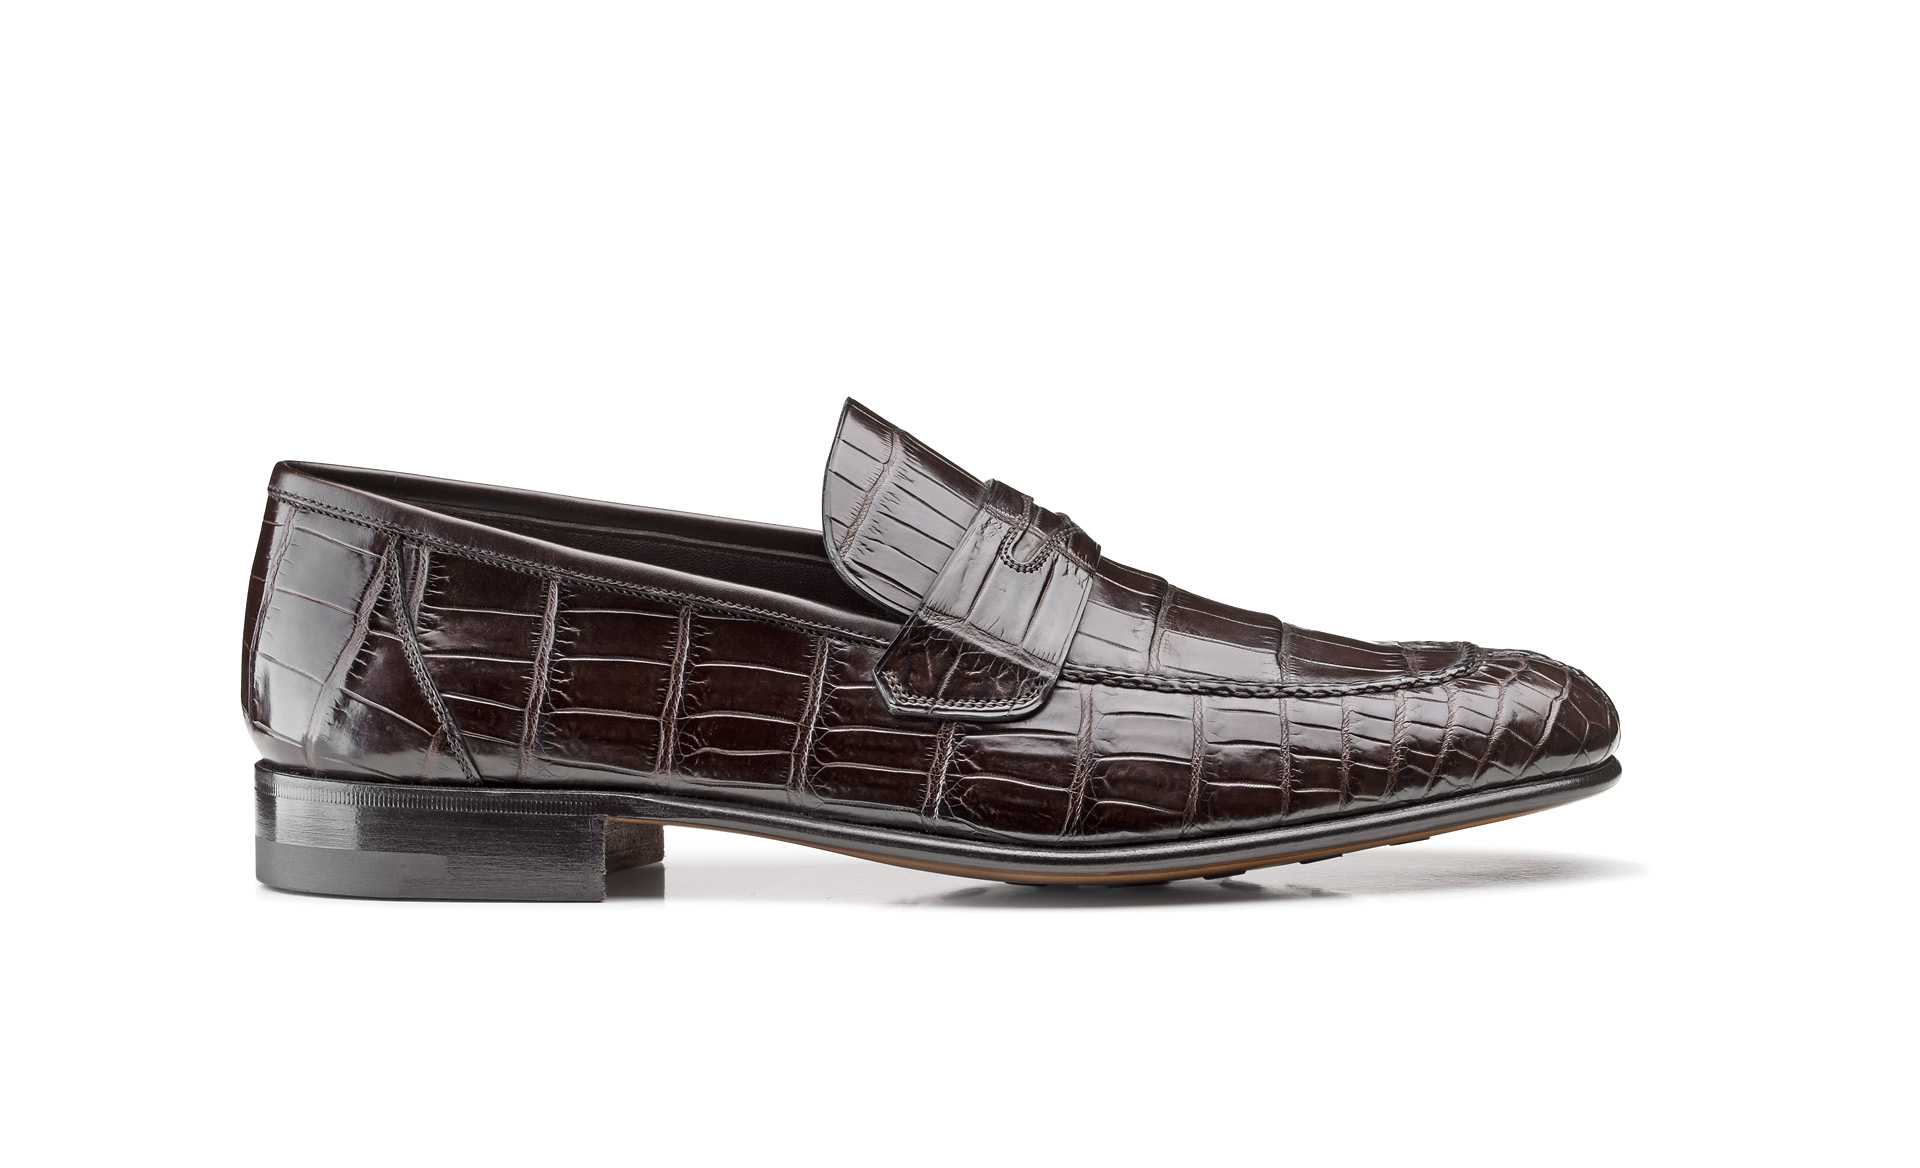 Bologna Construction Croco Loafers